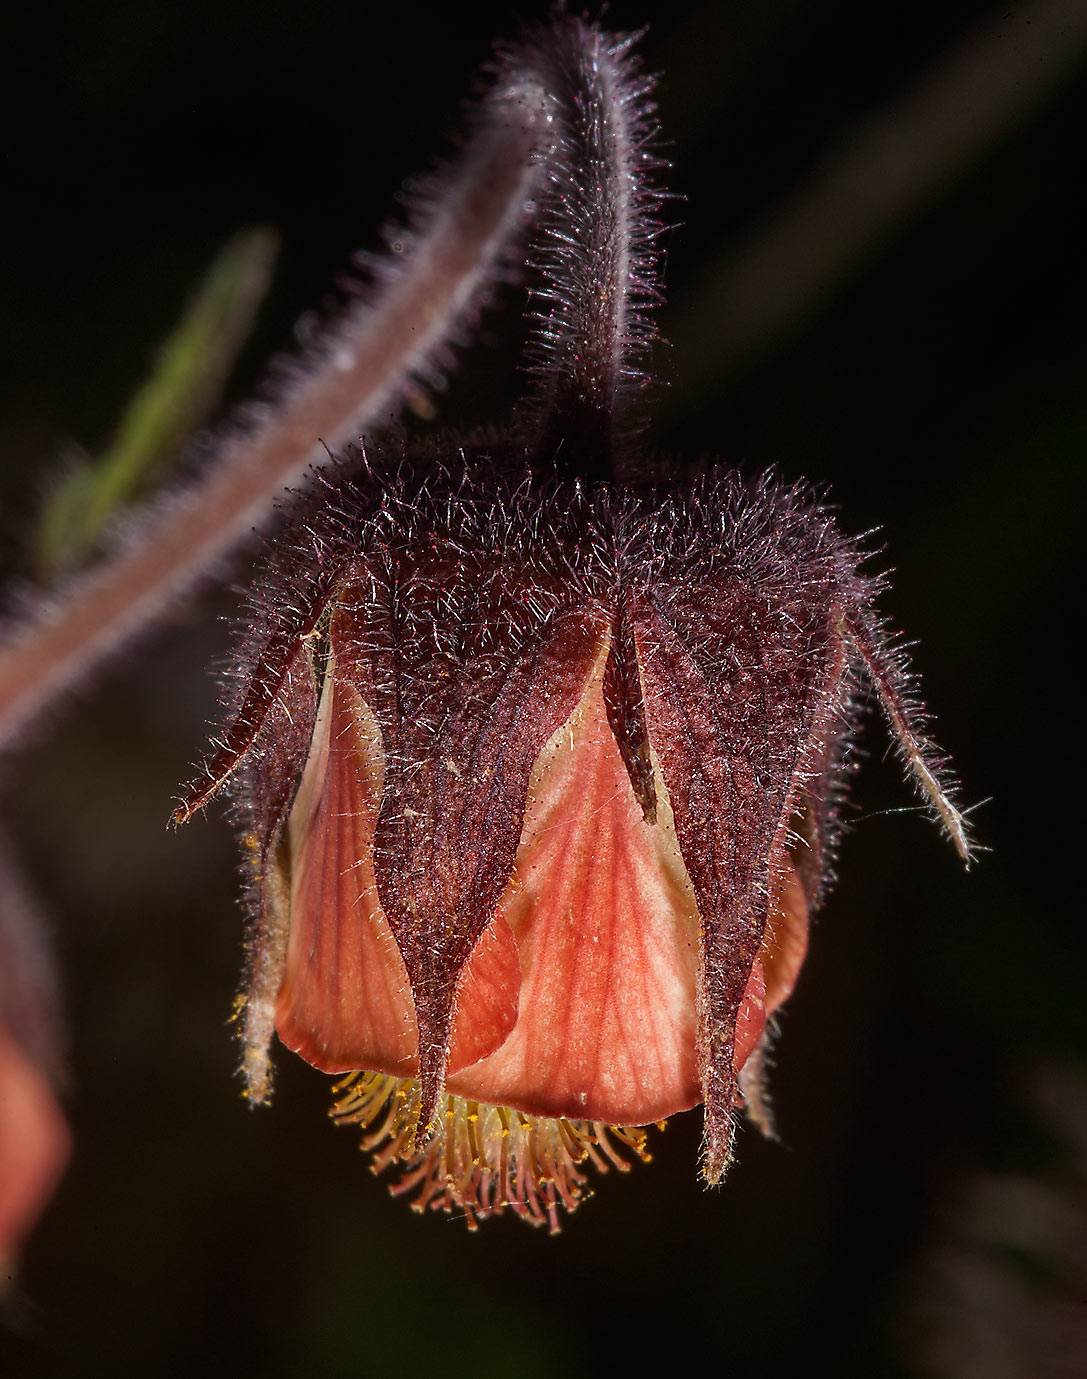 Flower of Water Avens (Geum rivale, Russian name...north from St.Petersburg. Russia